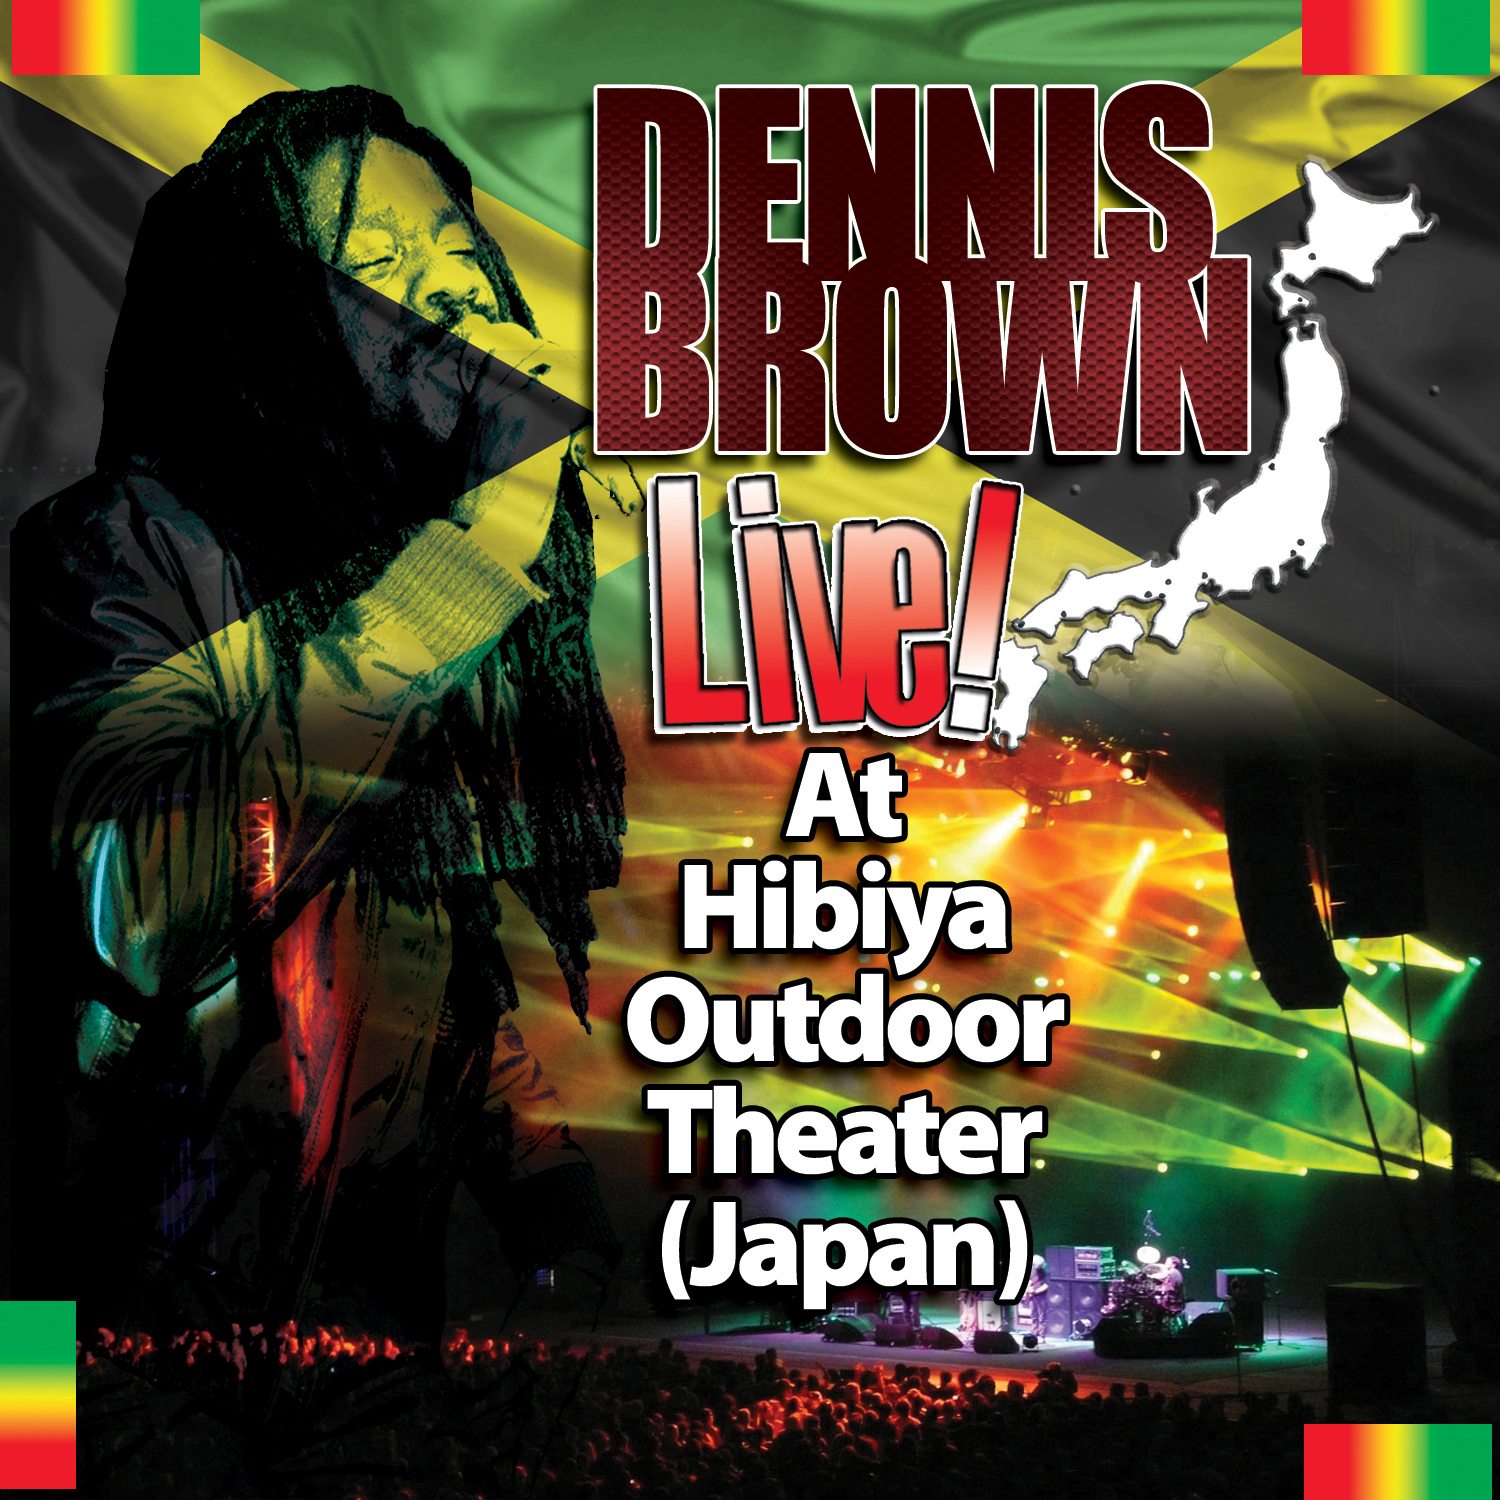 DENNIS BROWN – LIVE AT HIBIYA OUTDOOR THEATER (JAPAN)